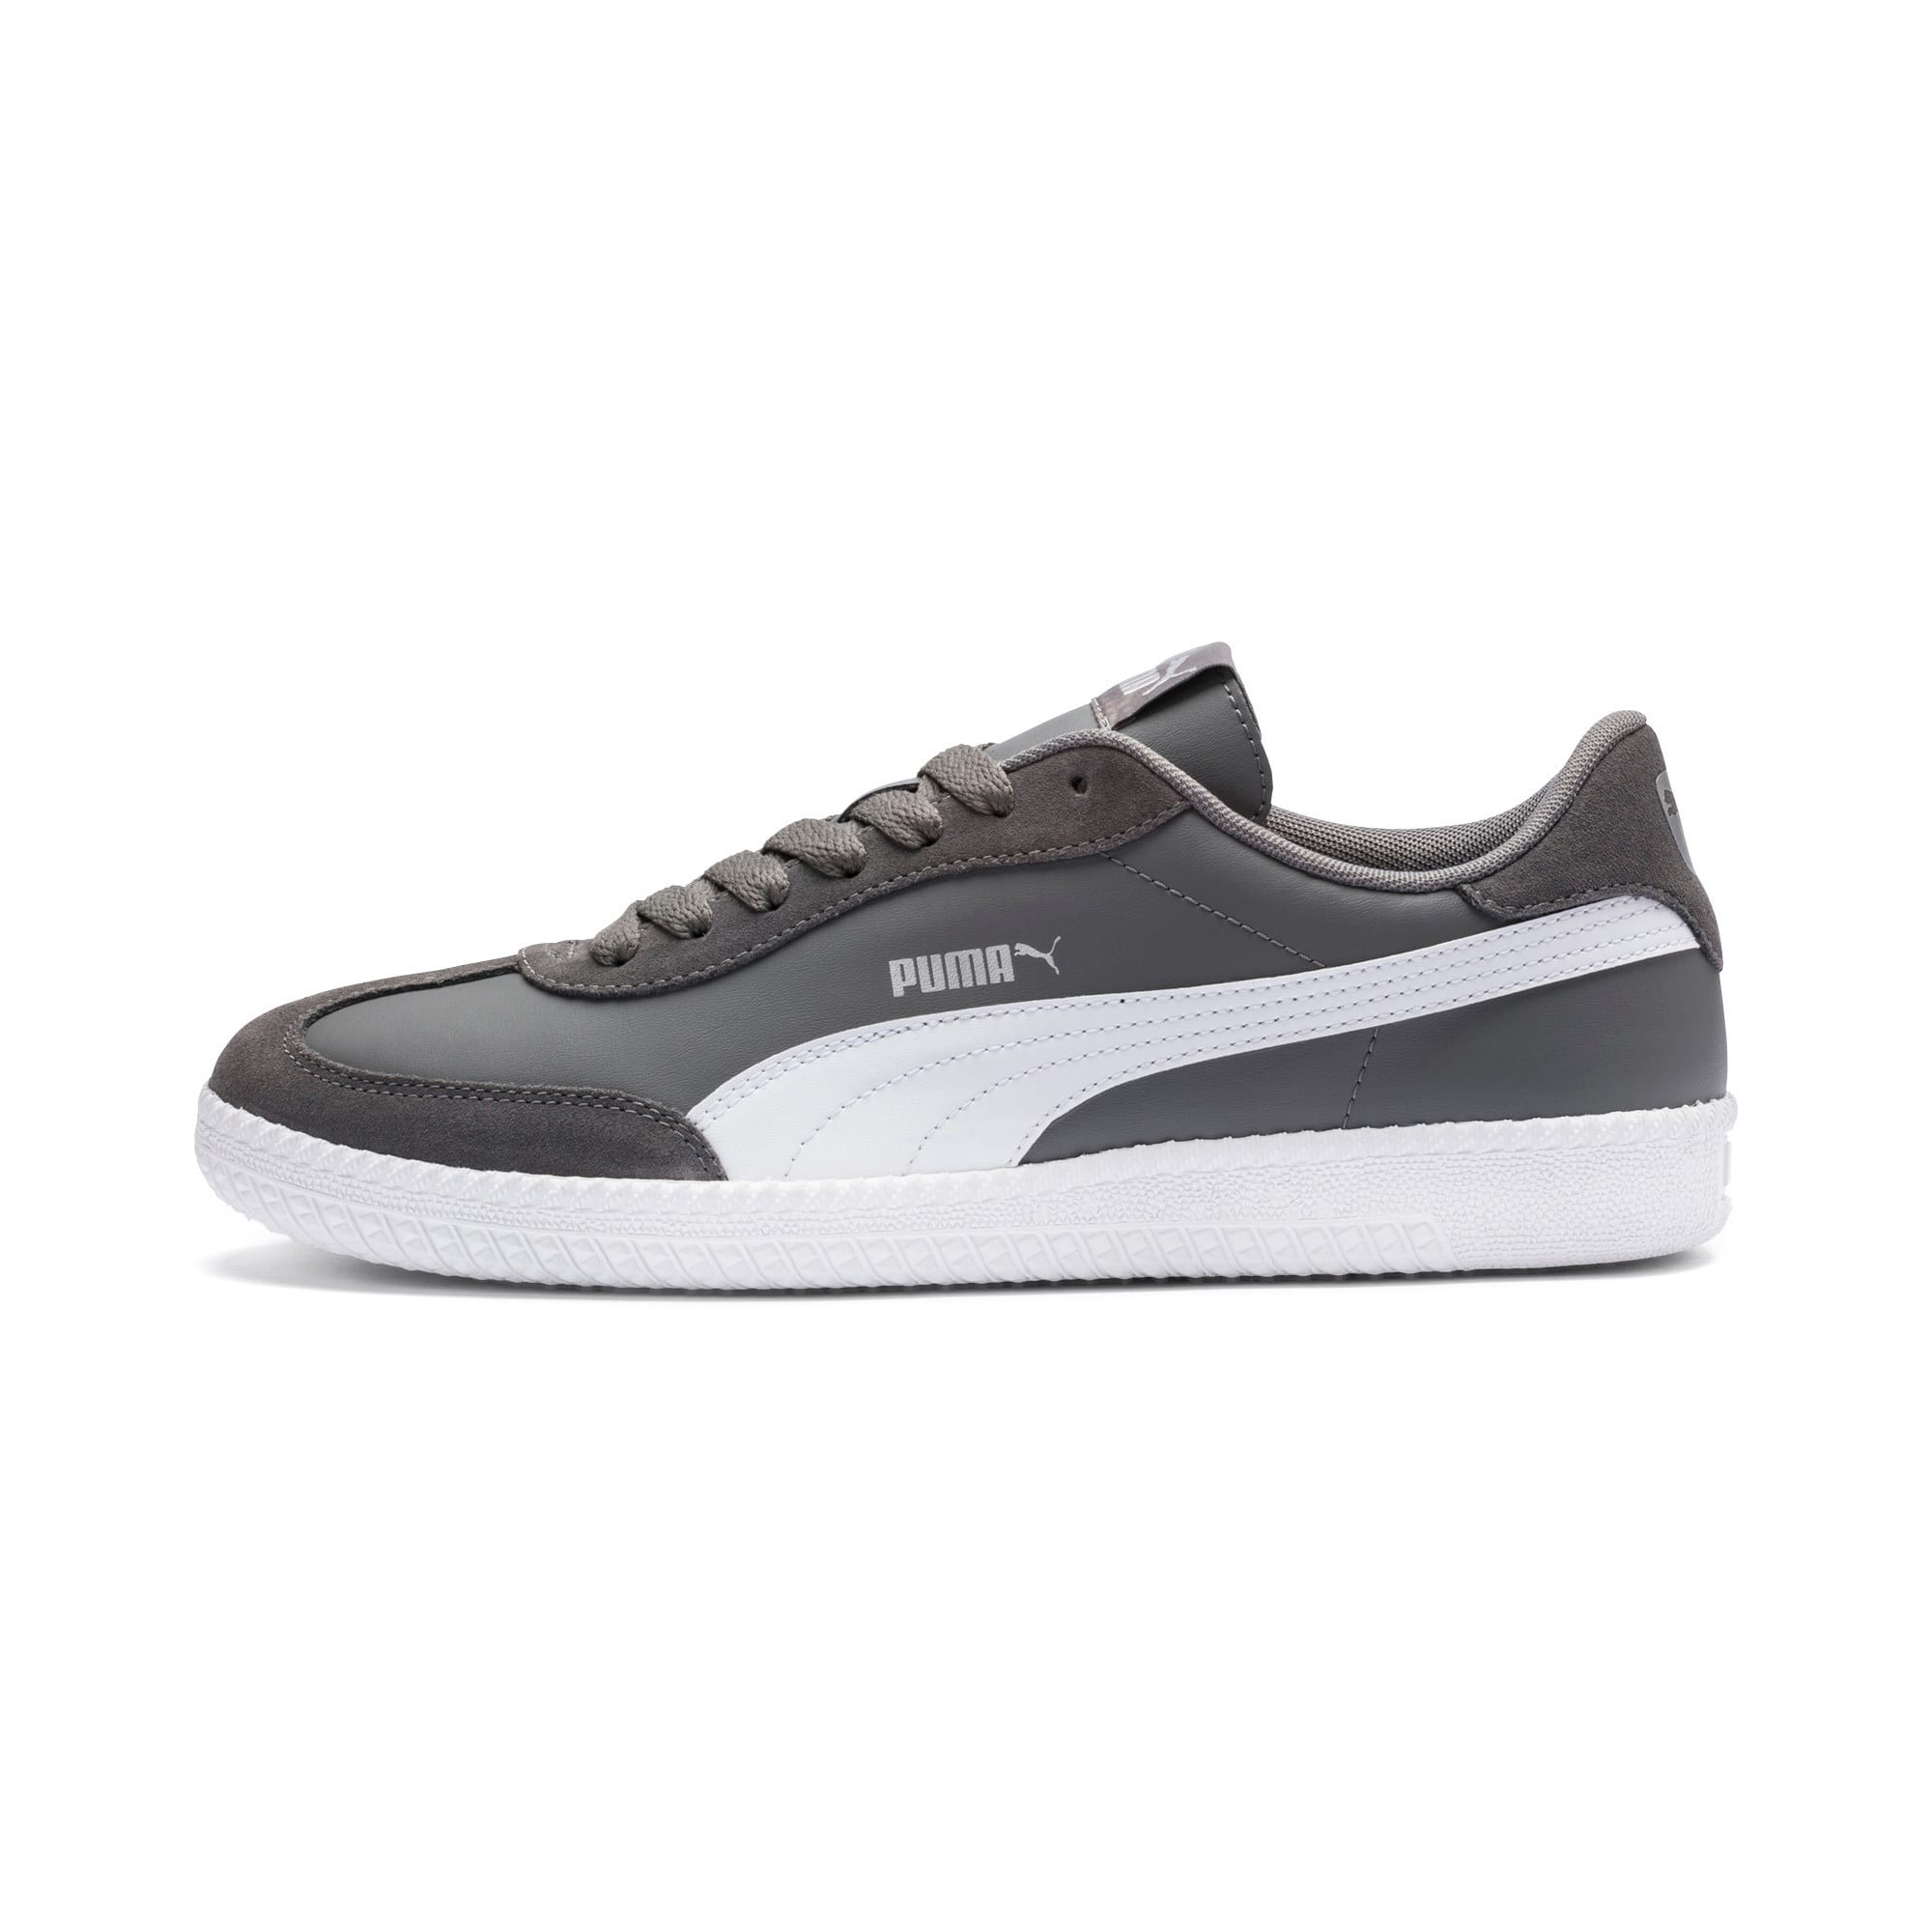 Thumbnail 1 of Astro Cup Sneakers, Steel Gray-Puma White, medium